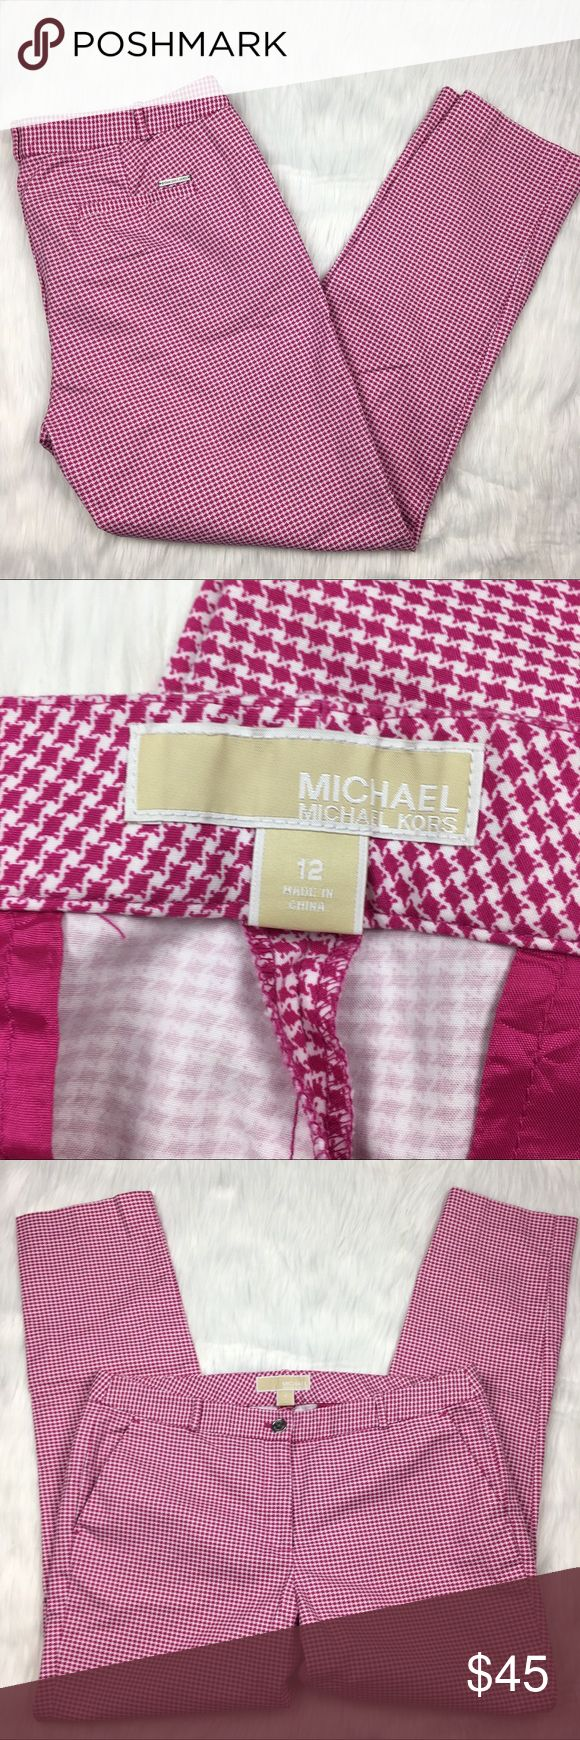 """Michael Kors Houndstooth Pink Ankle Pants michael by michael kors pink and white houndstooth trousers. skinny ankle length pants. flat waistband and pockets. a fun twist on a classic style. flattering and beautiful!  size: 12 measurements: waist 17.5"""" across / inseam 28"""" hips 20"""" across / rise 9""""  fabric content: cotton spandex blend washing instructions: machine wash flaws: none discounts: 10% off bundles of 2 items and 15% off bundles of 3+ items MICHAEL Michael Kors Pants Ankle & Cropped"""